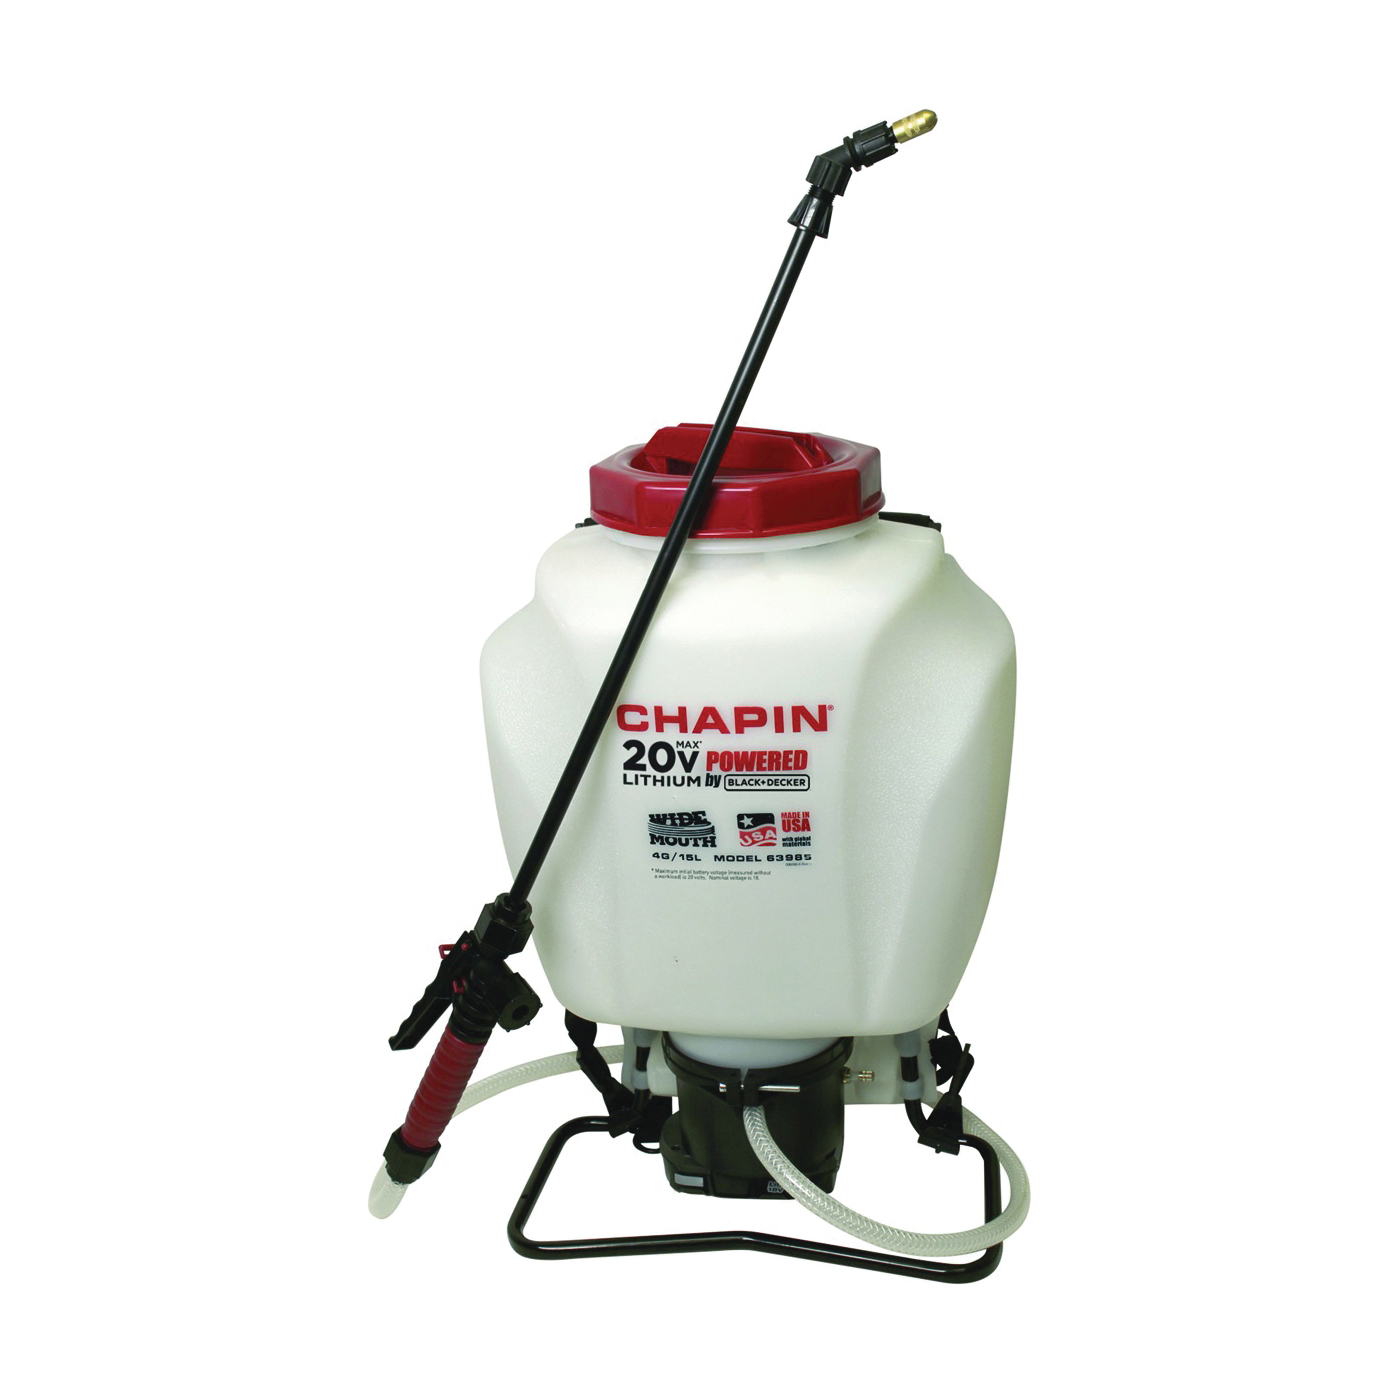 Picture of CHAPIN 63985 Backpack Sprayer, 4 gal Tank, Poly Tank, 20 ft Horizontal, 27 ft Vertical Spray Range, 48 in L Hose